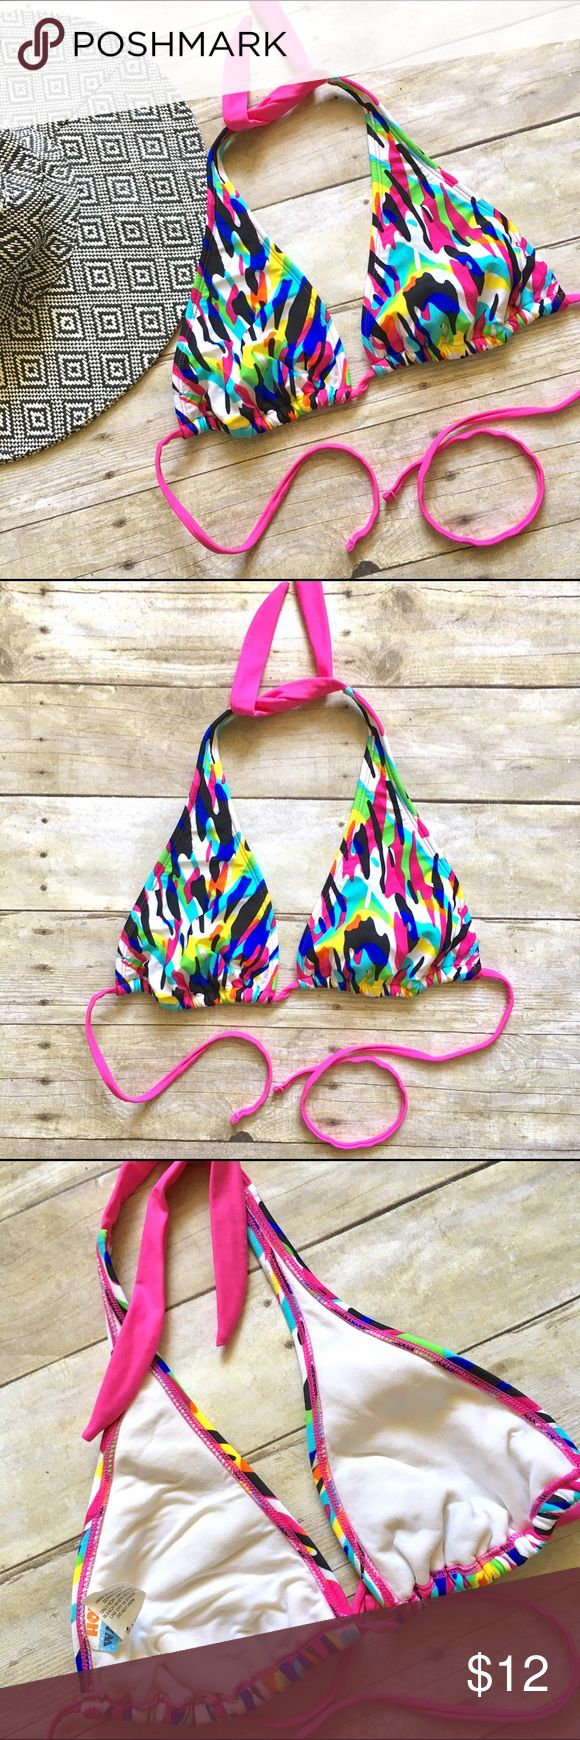 Hot Water bright triangle bikini top Light padded bright bikini top with silver shimmer accent. Hot pink strings. In excellent condition. Size Large. Hot Water Swim Bikinis